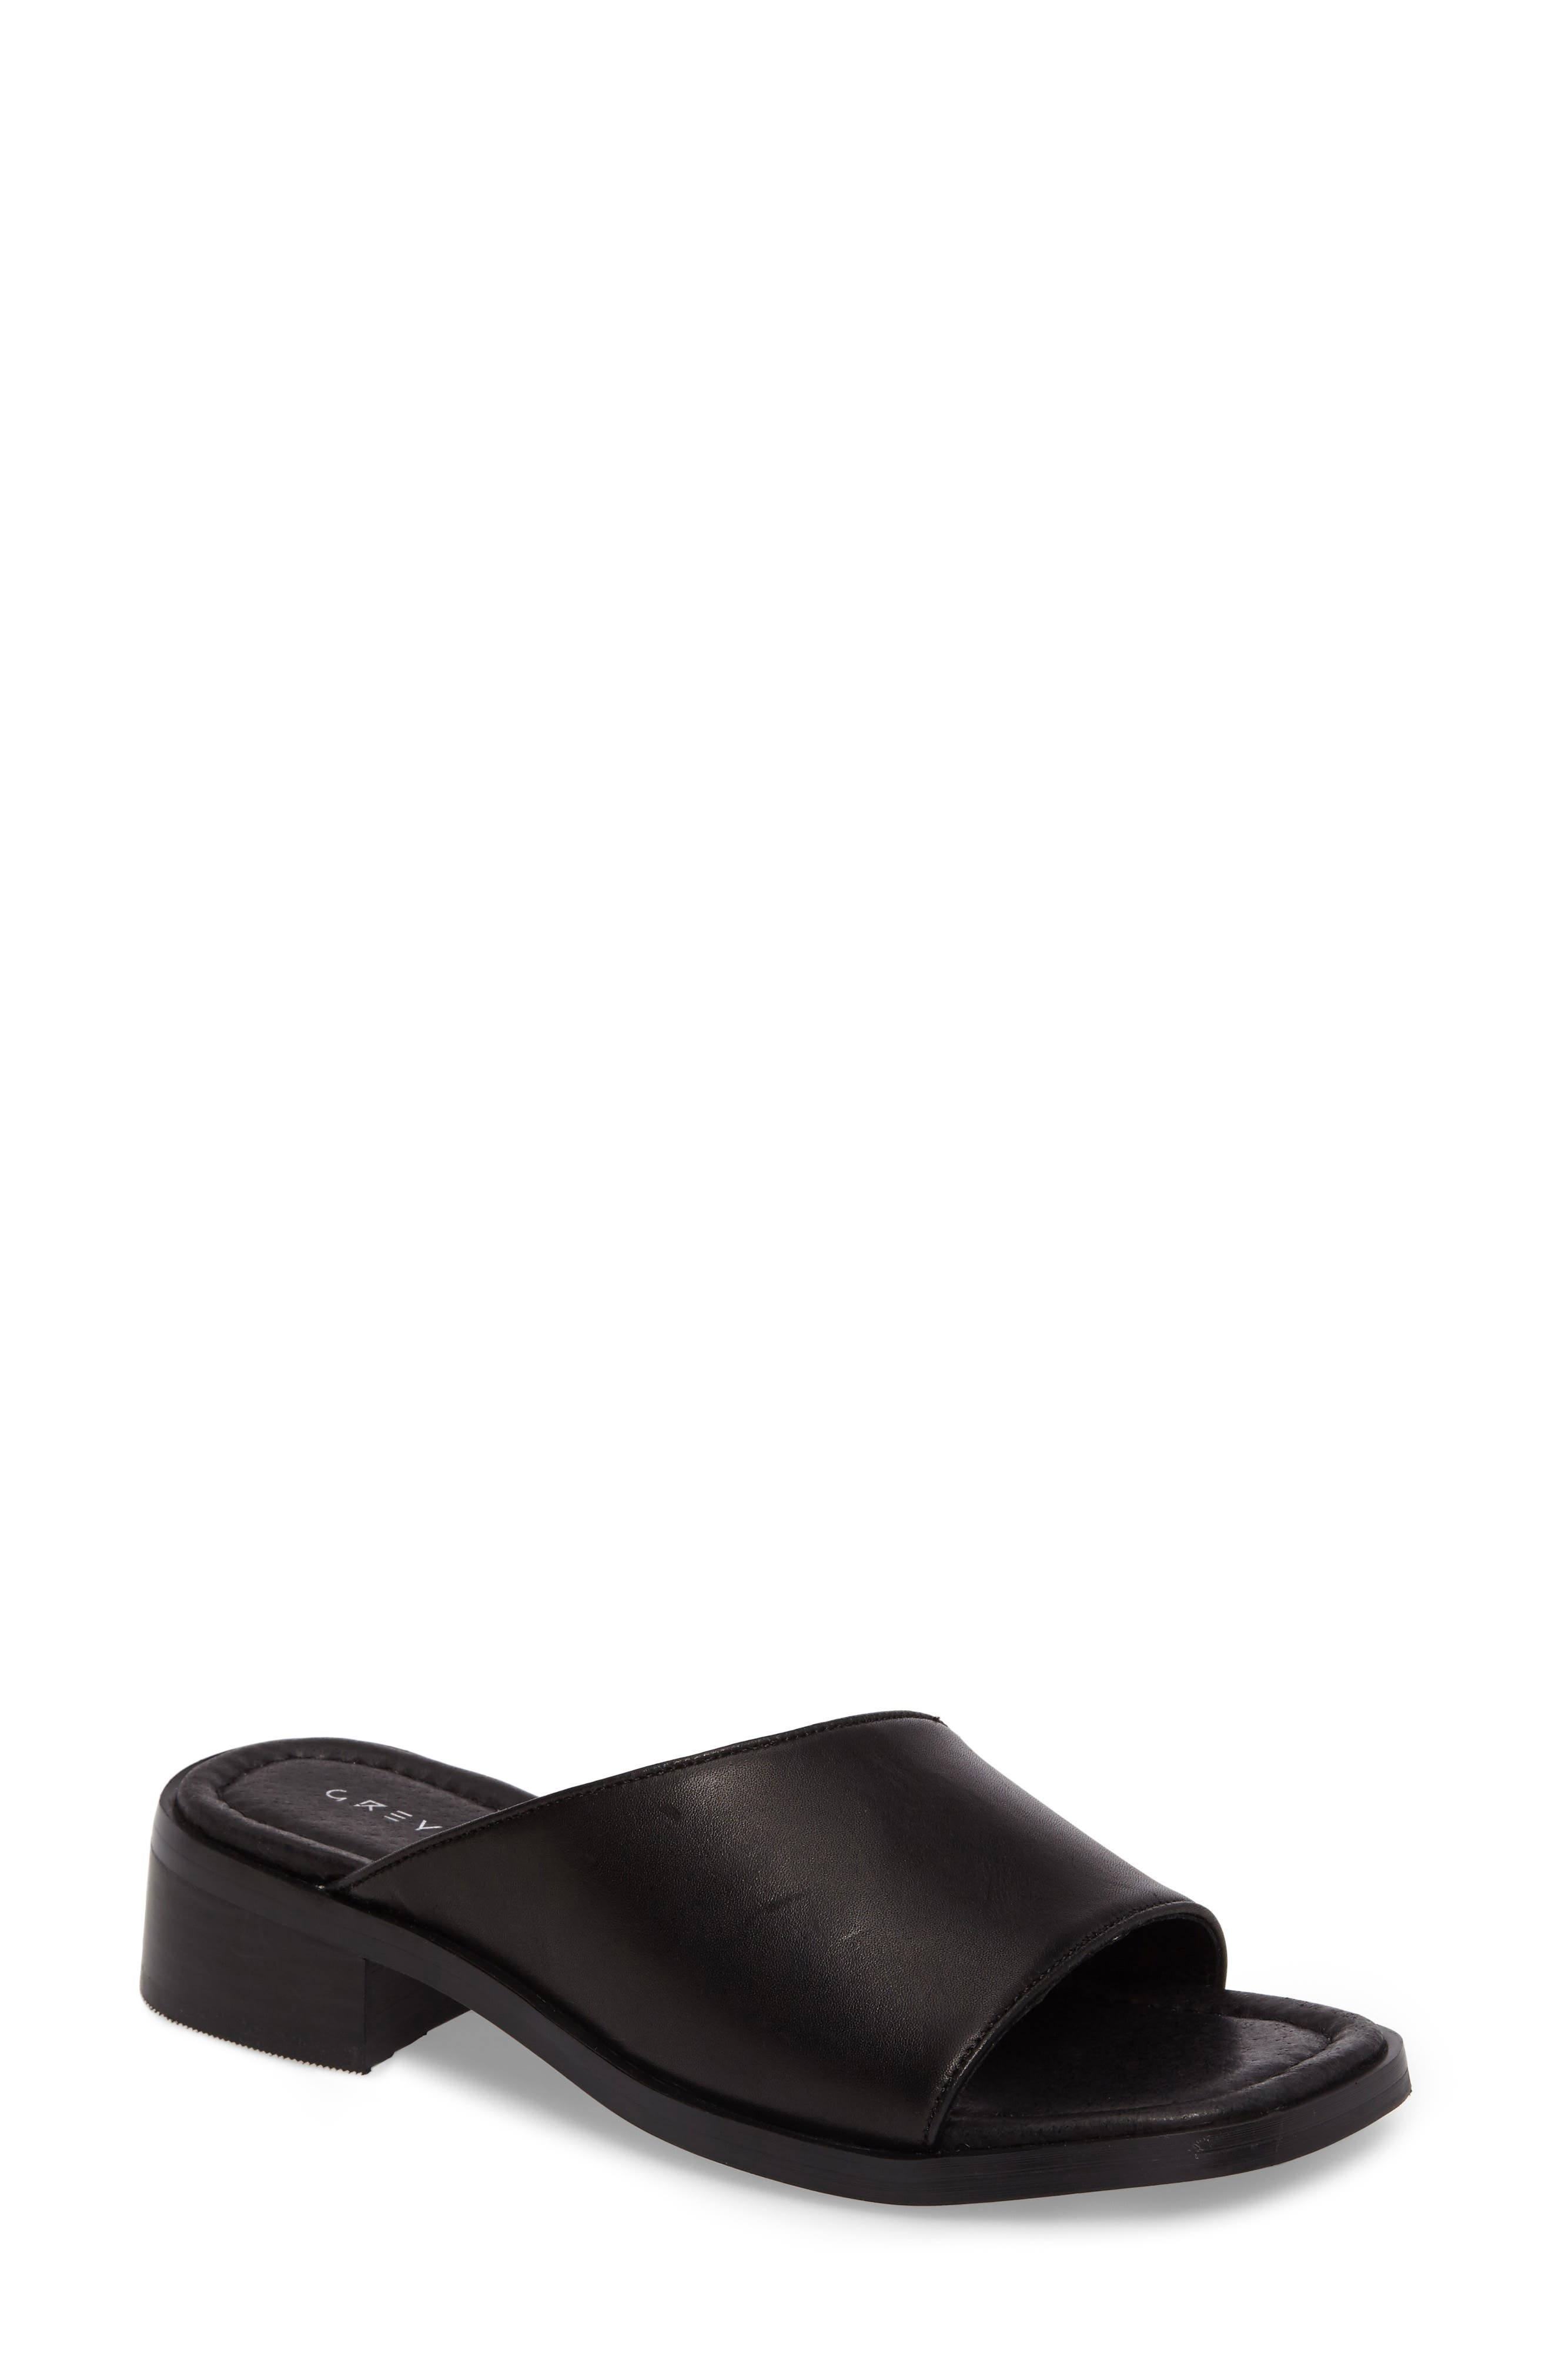 Paula Slide Sandal,                         Main,                         color, Black